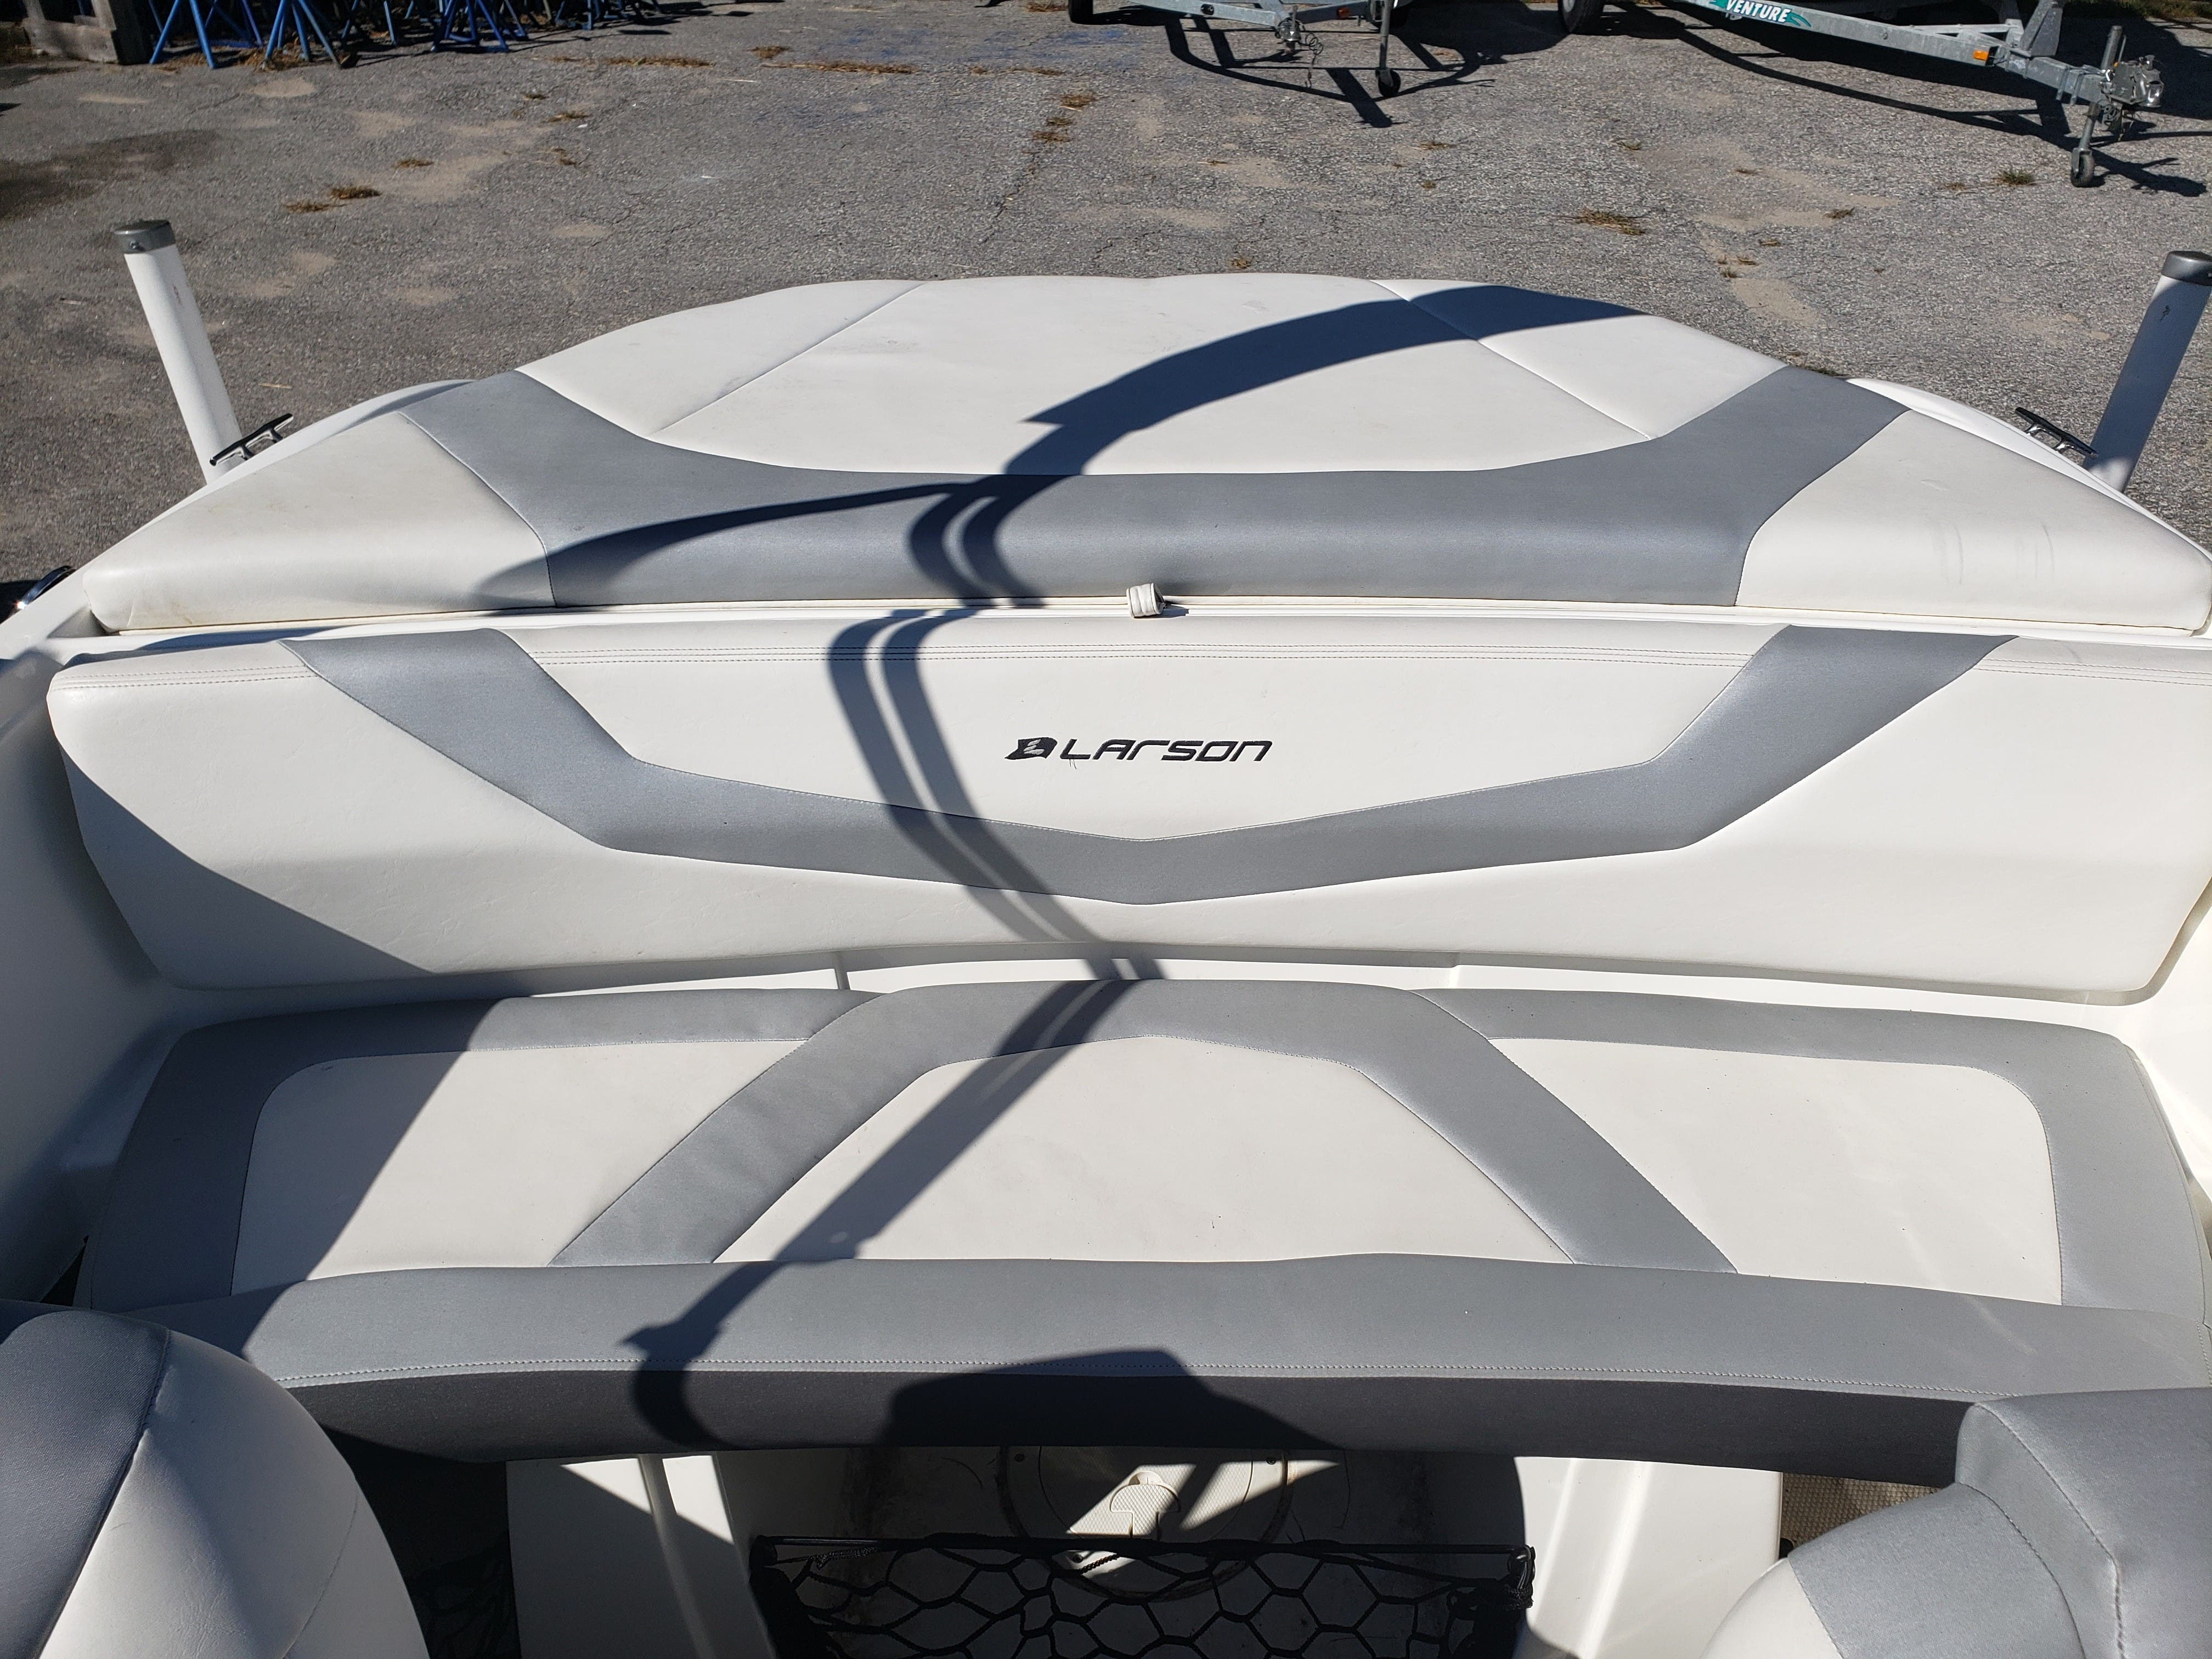 2014 Larson boat for sale, model of the boat is LX 195 S & Image # 8 of 10